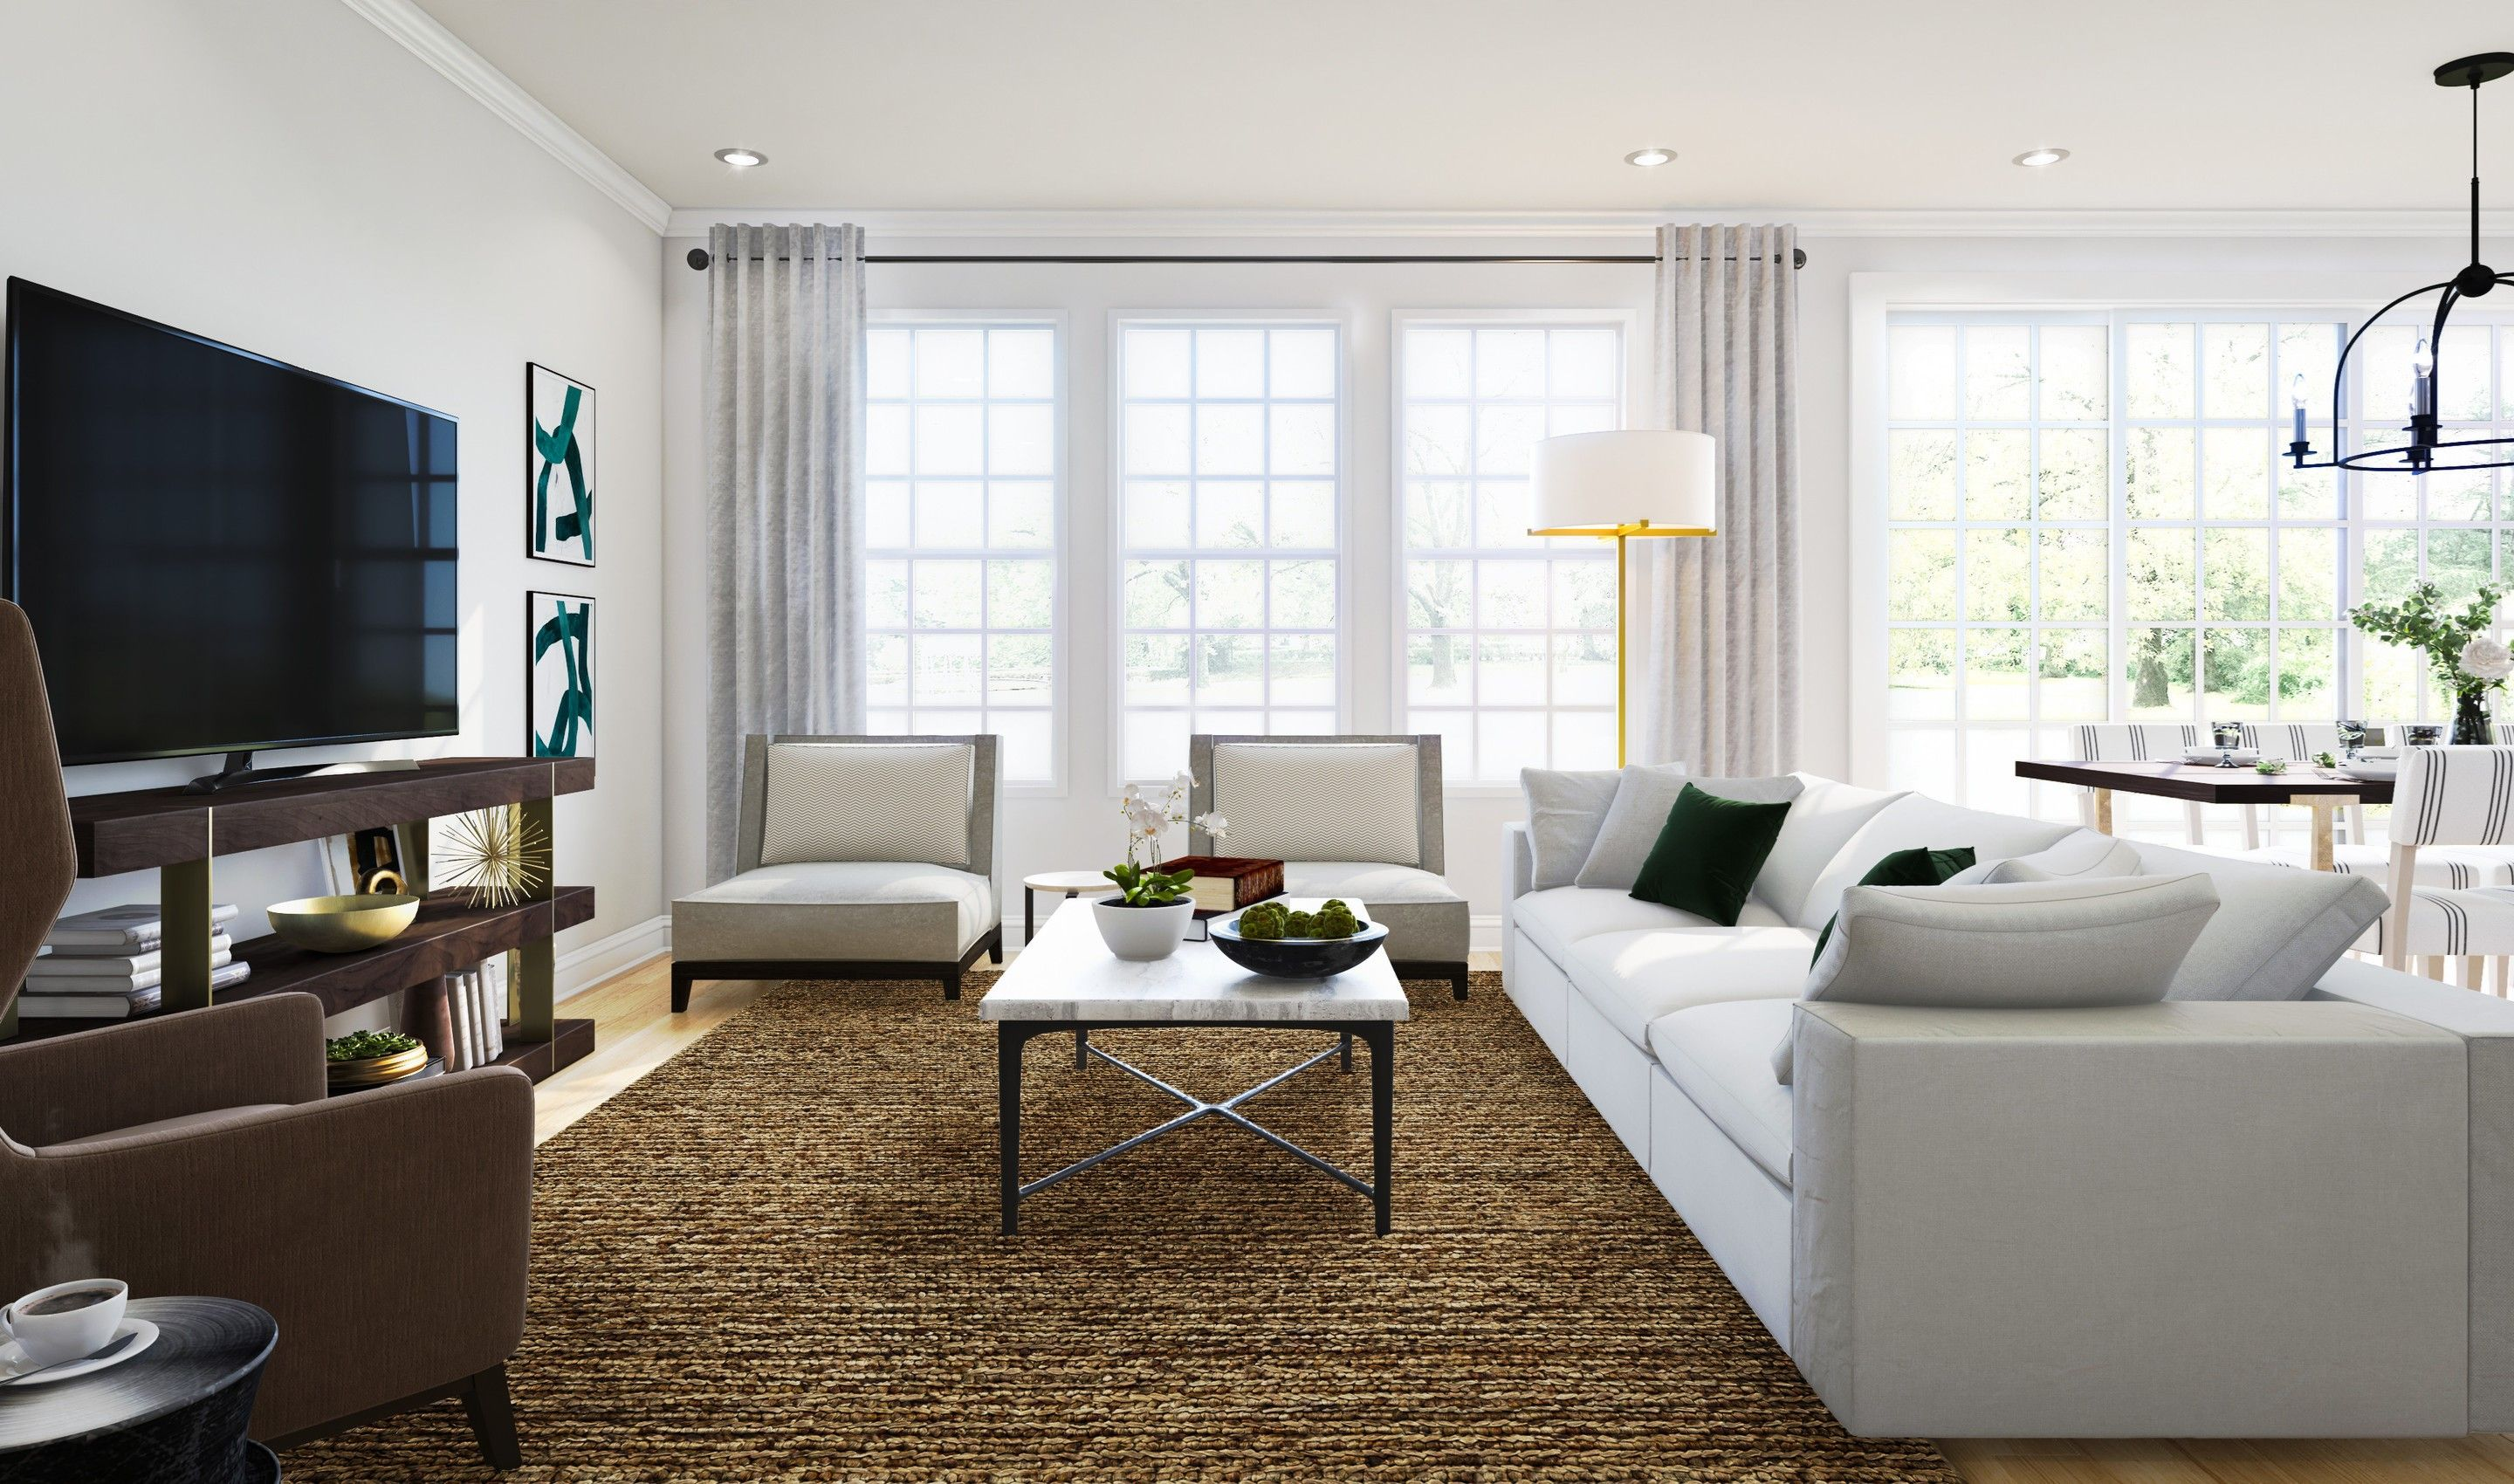 Living Area featured in the Bryn Mawr By K. Hovnanian® Homes in Middlesex County, NJ